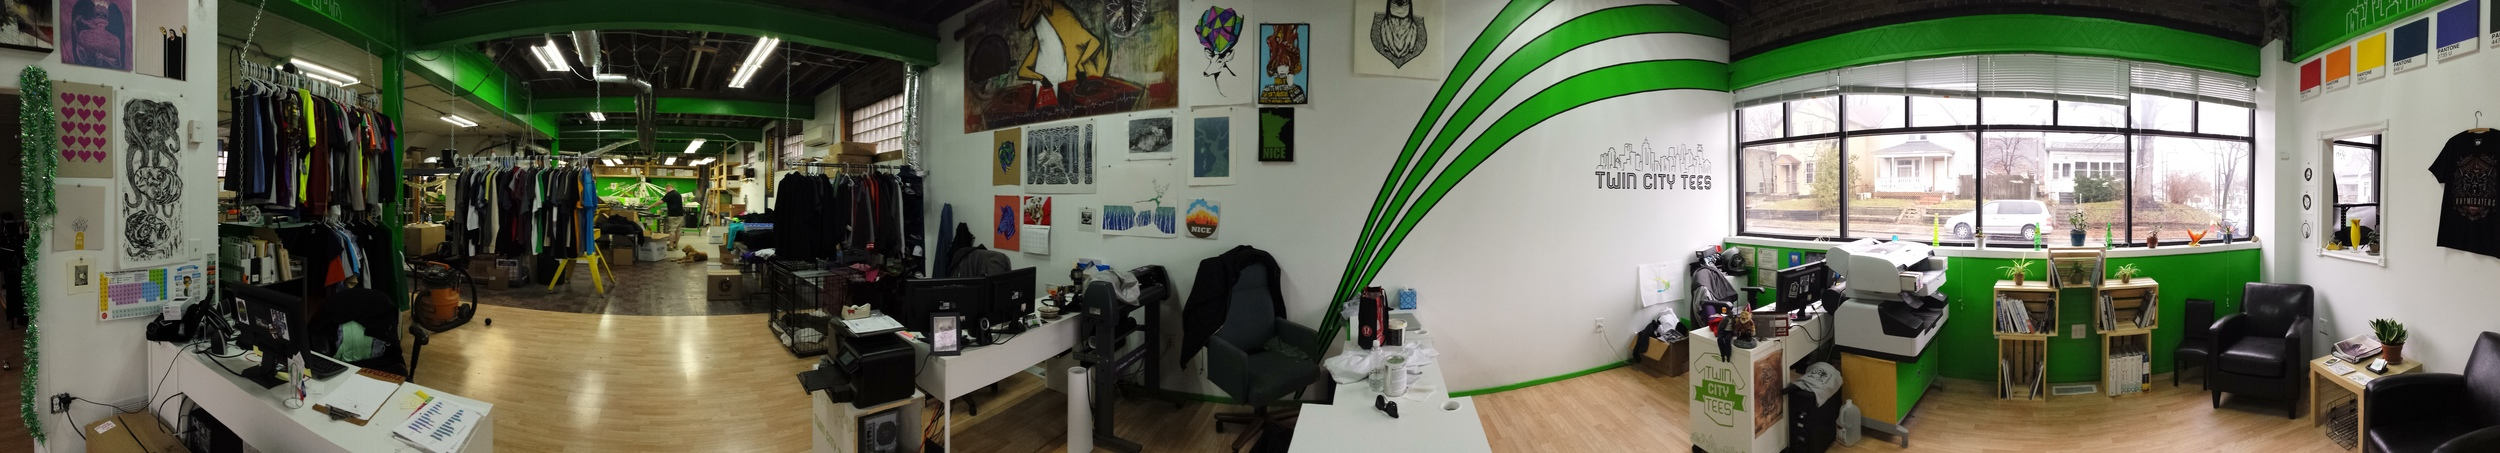 STORE FRONT/OFFICE AREA PANO